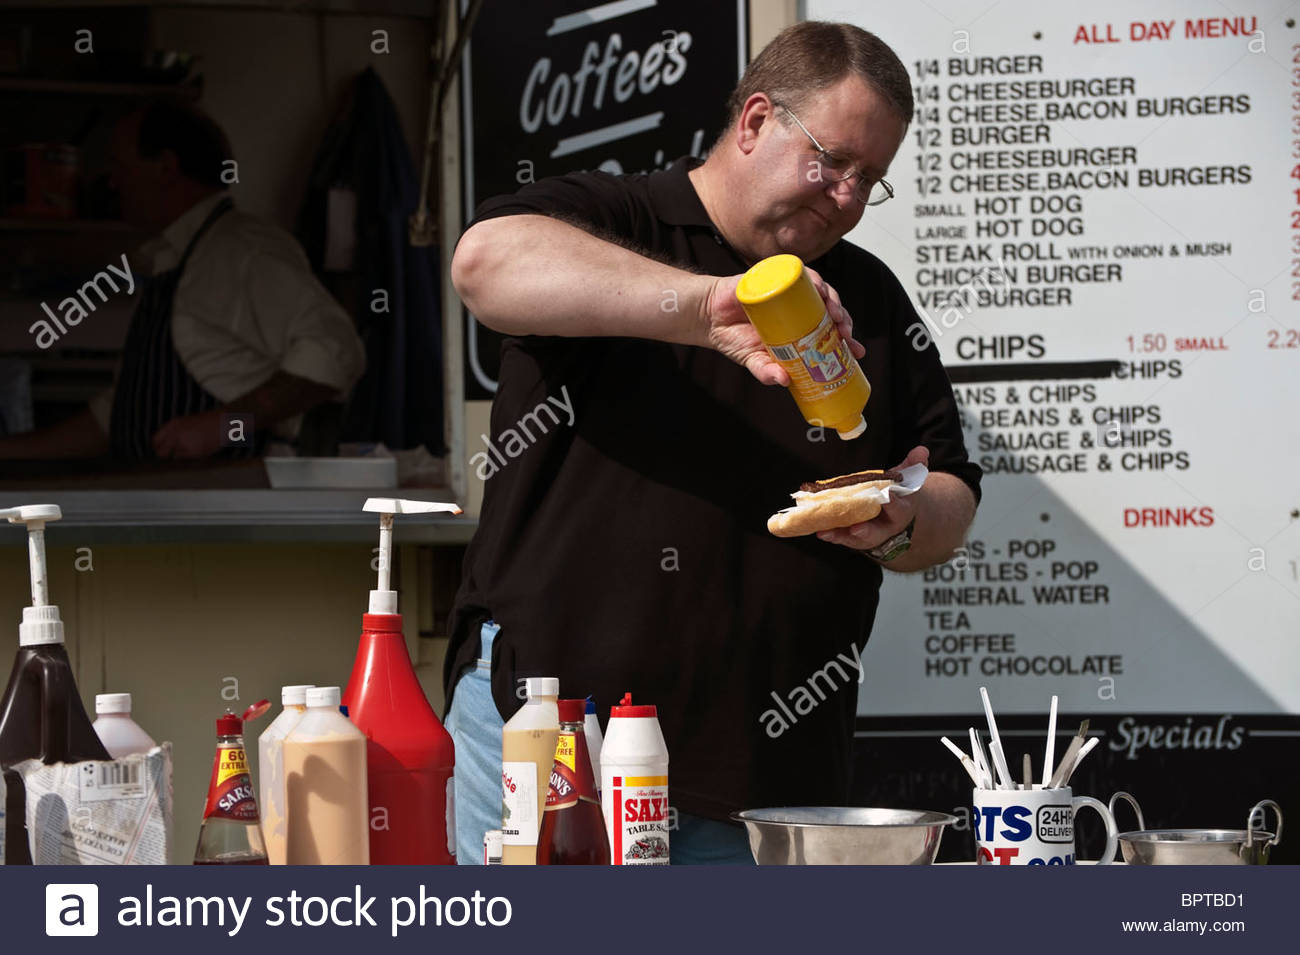 Fat man eating junk food at an outdoor catering van, UK. Overweight man eating a burger, outside. - Stock Image